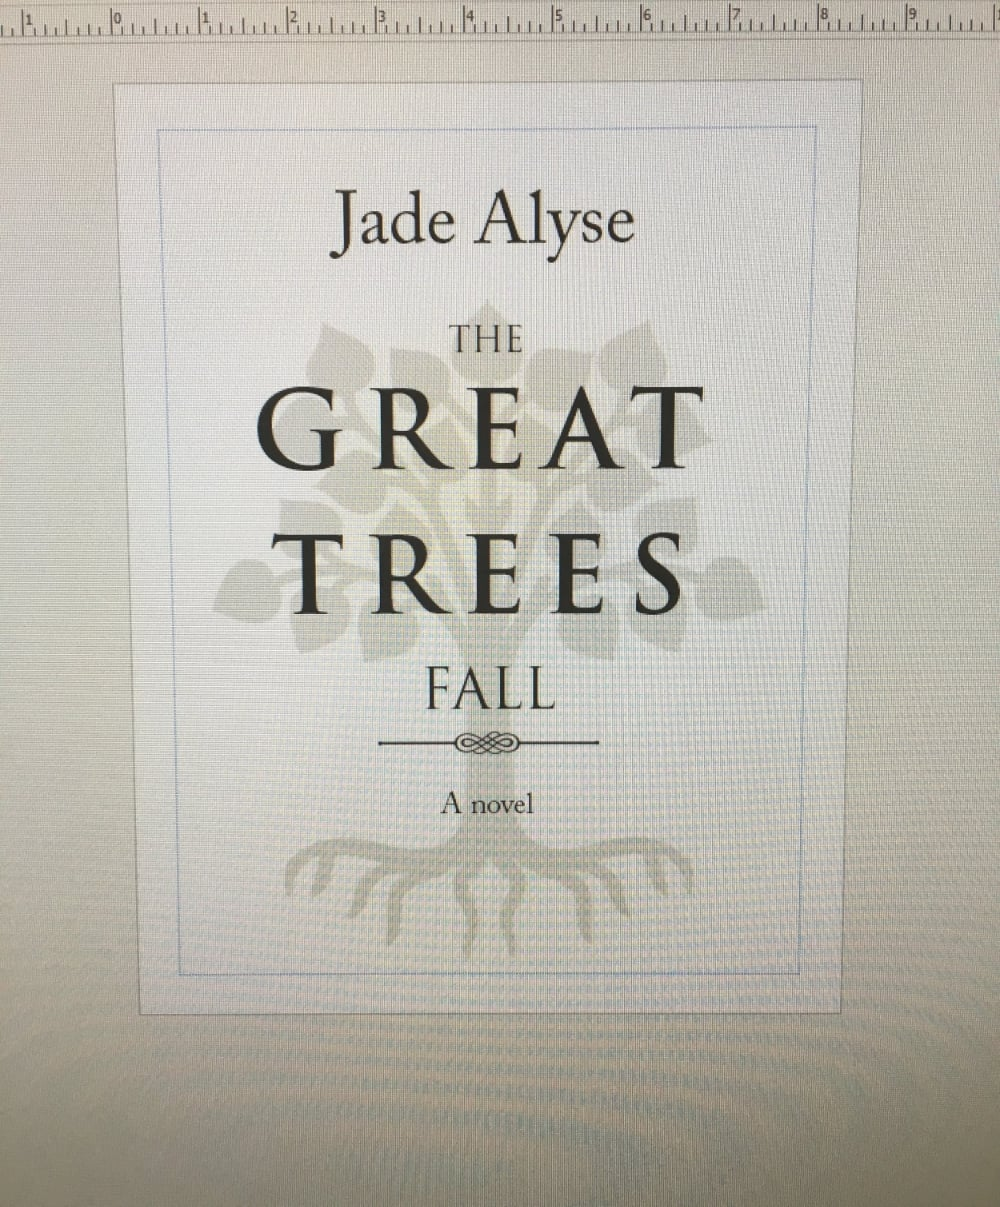 Copyright ©2016 Jade Alyse Writes